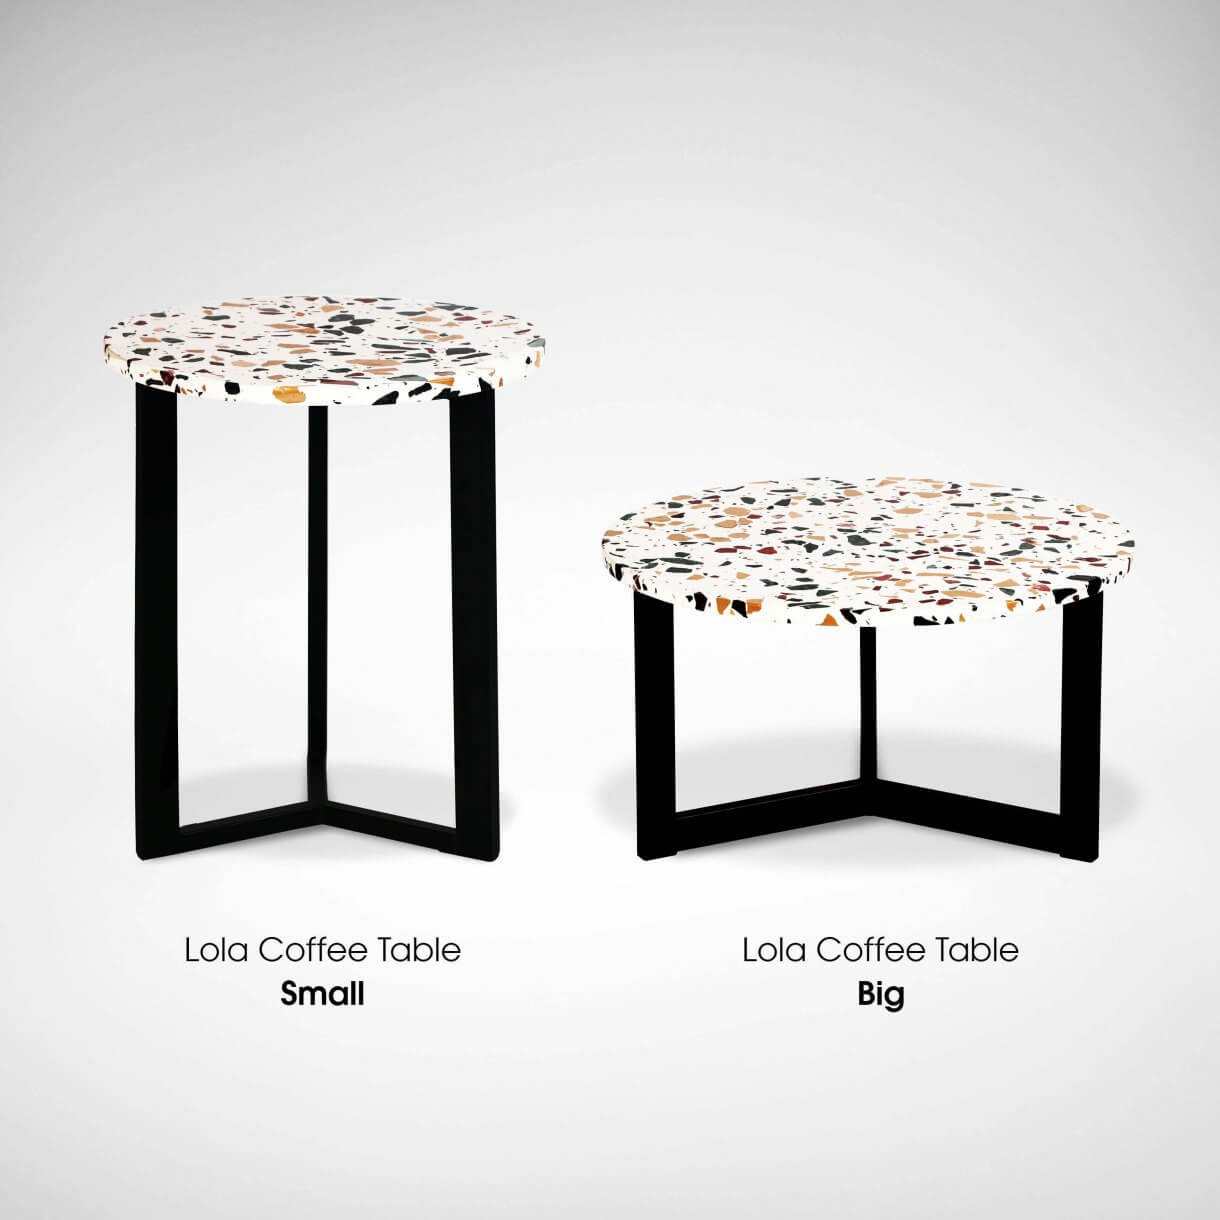 Lola Terrazzo Coffee Table with Height Variations - Comfort Furniture